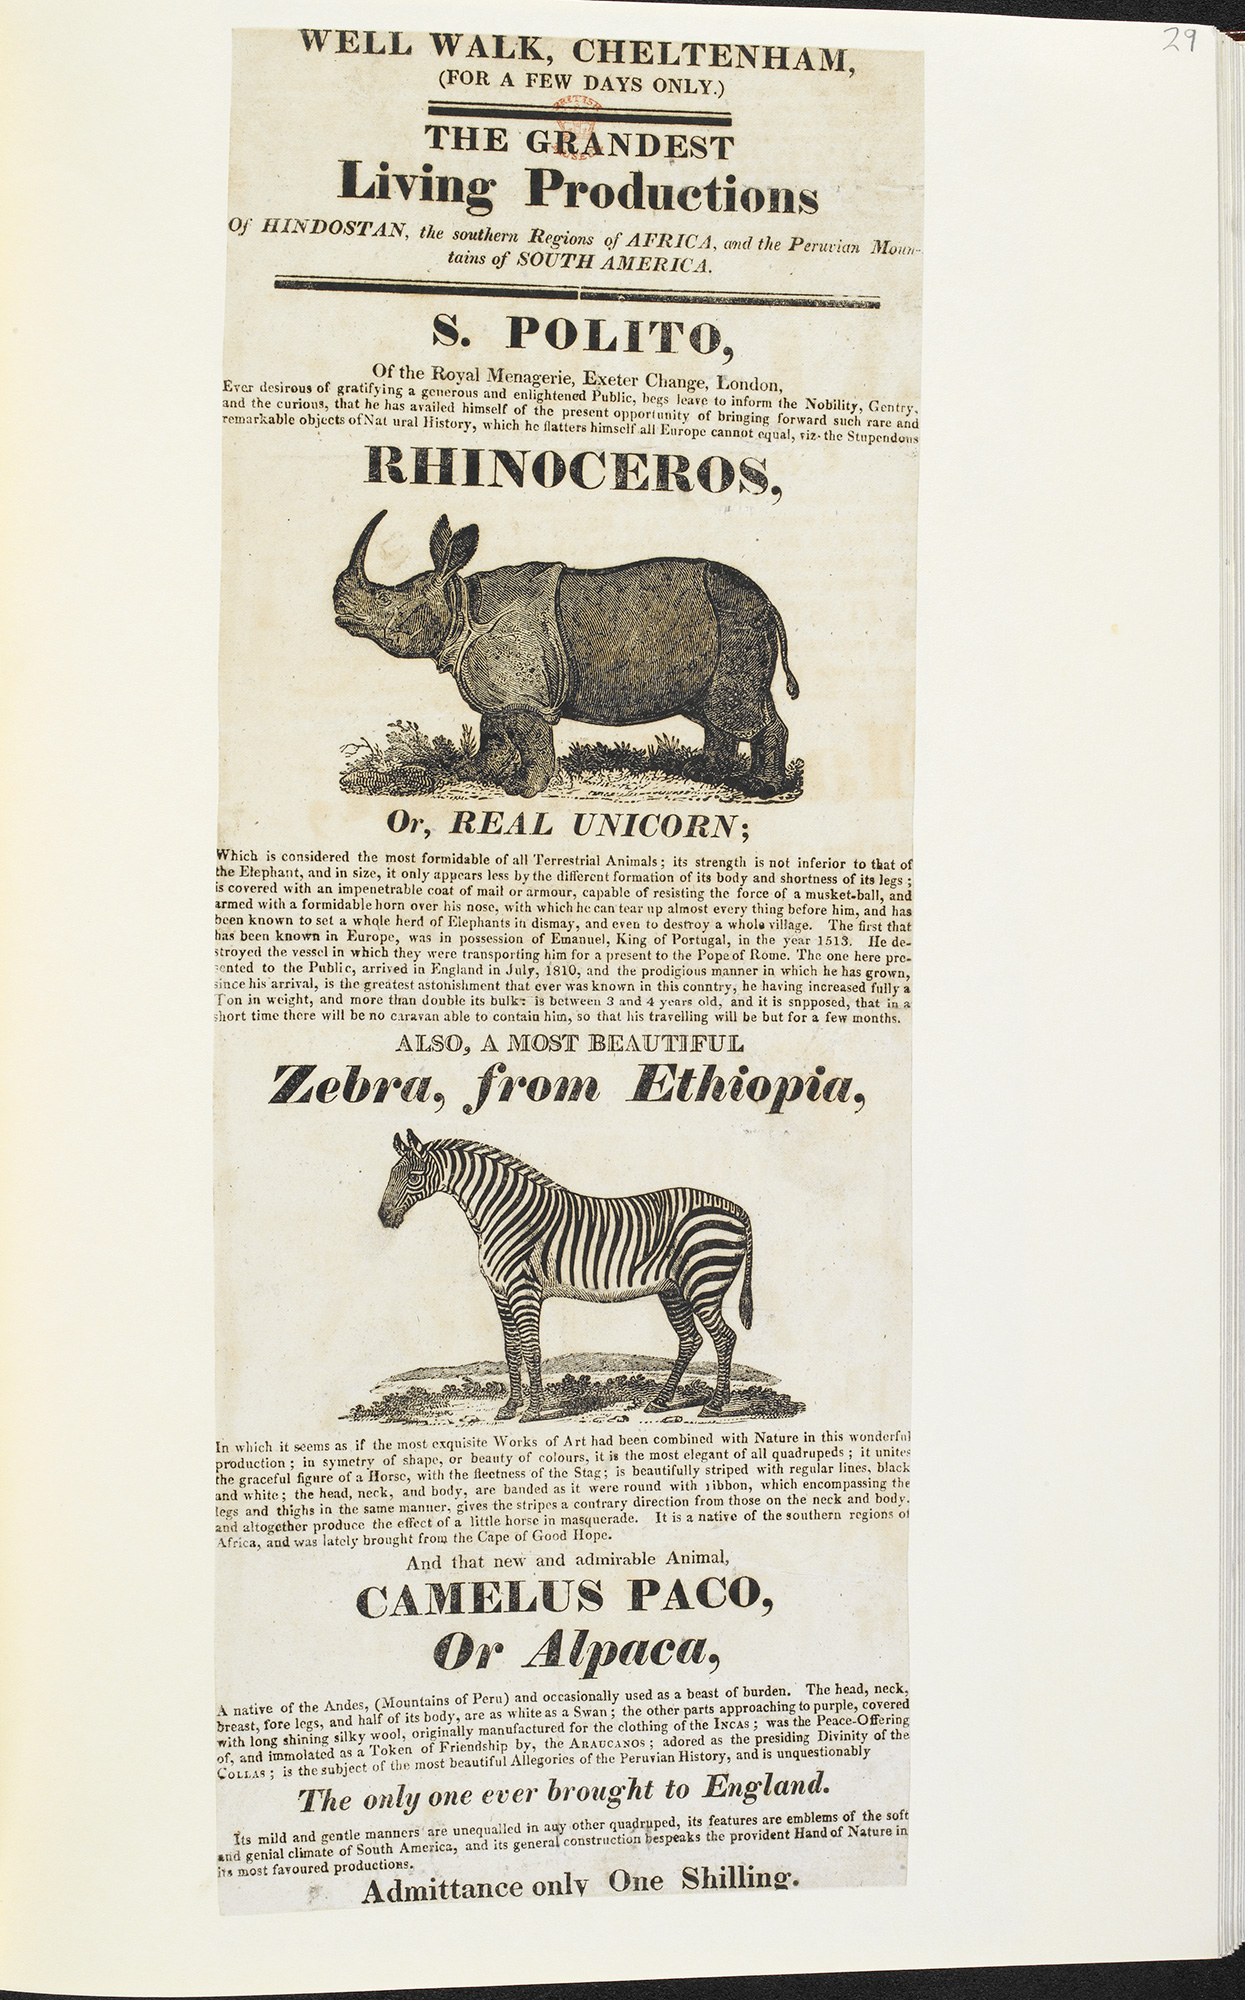 Poster advertising the exhibition of a rhinoceros, zebra and alpaca